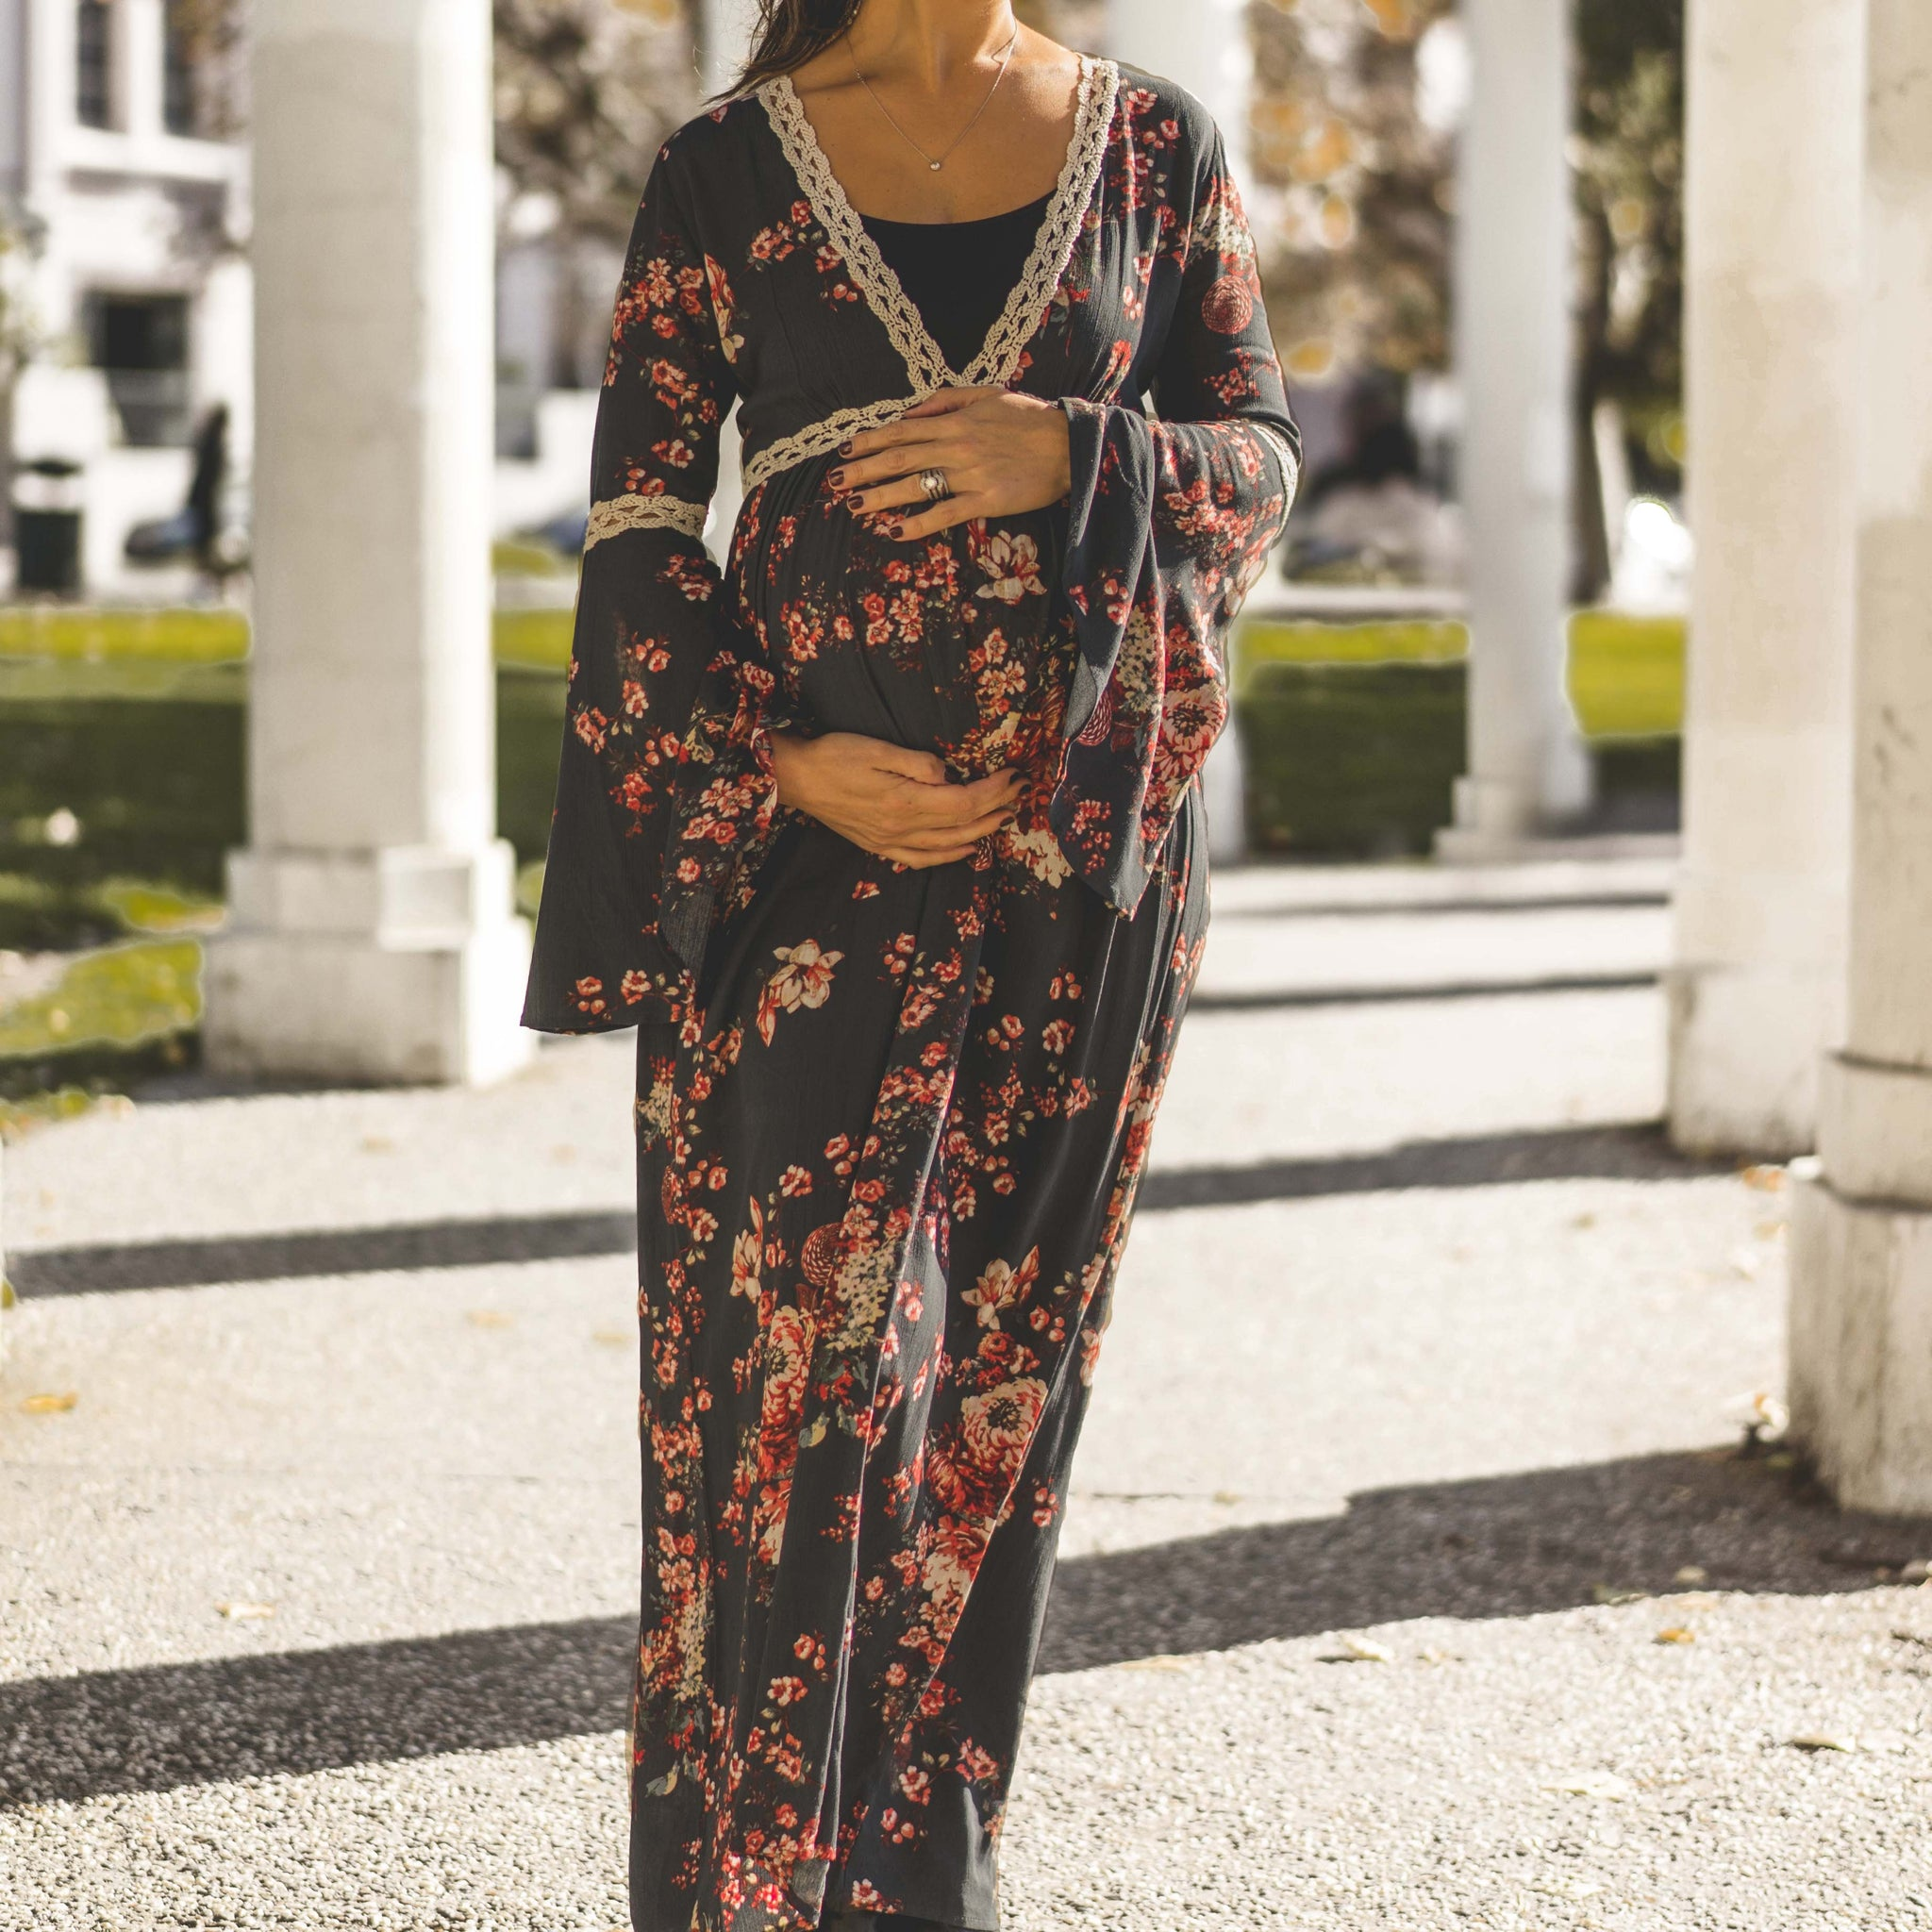 7afd35477ed ... Audrey and Olive maternity floral boho bohemian bell sleeve maxi dress  grey